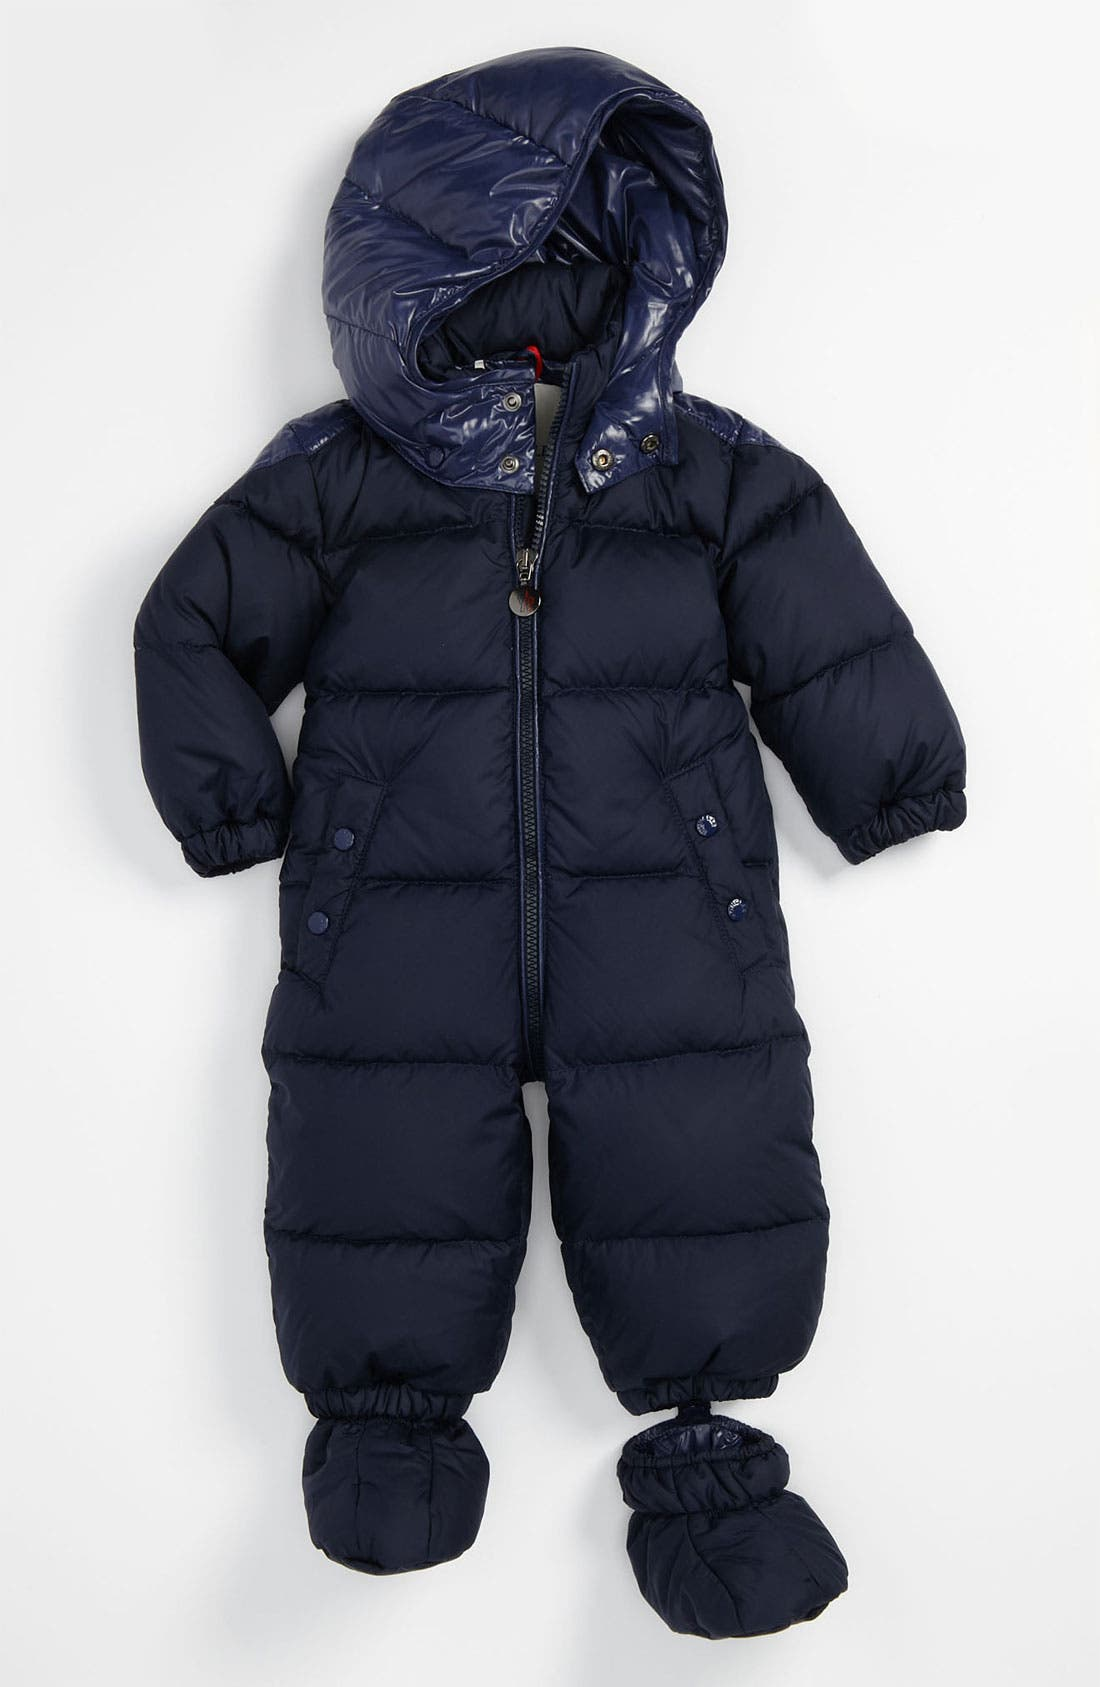 Alternate Image 1 Selected - Moncler 'Amandes' Puffer Snowsuit (Infant)